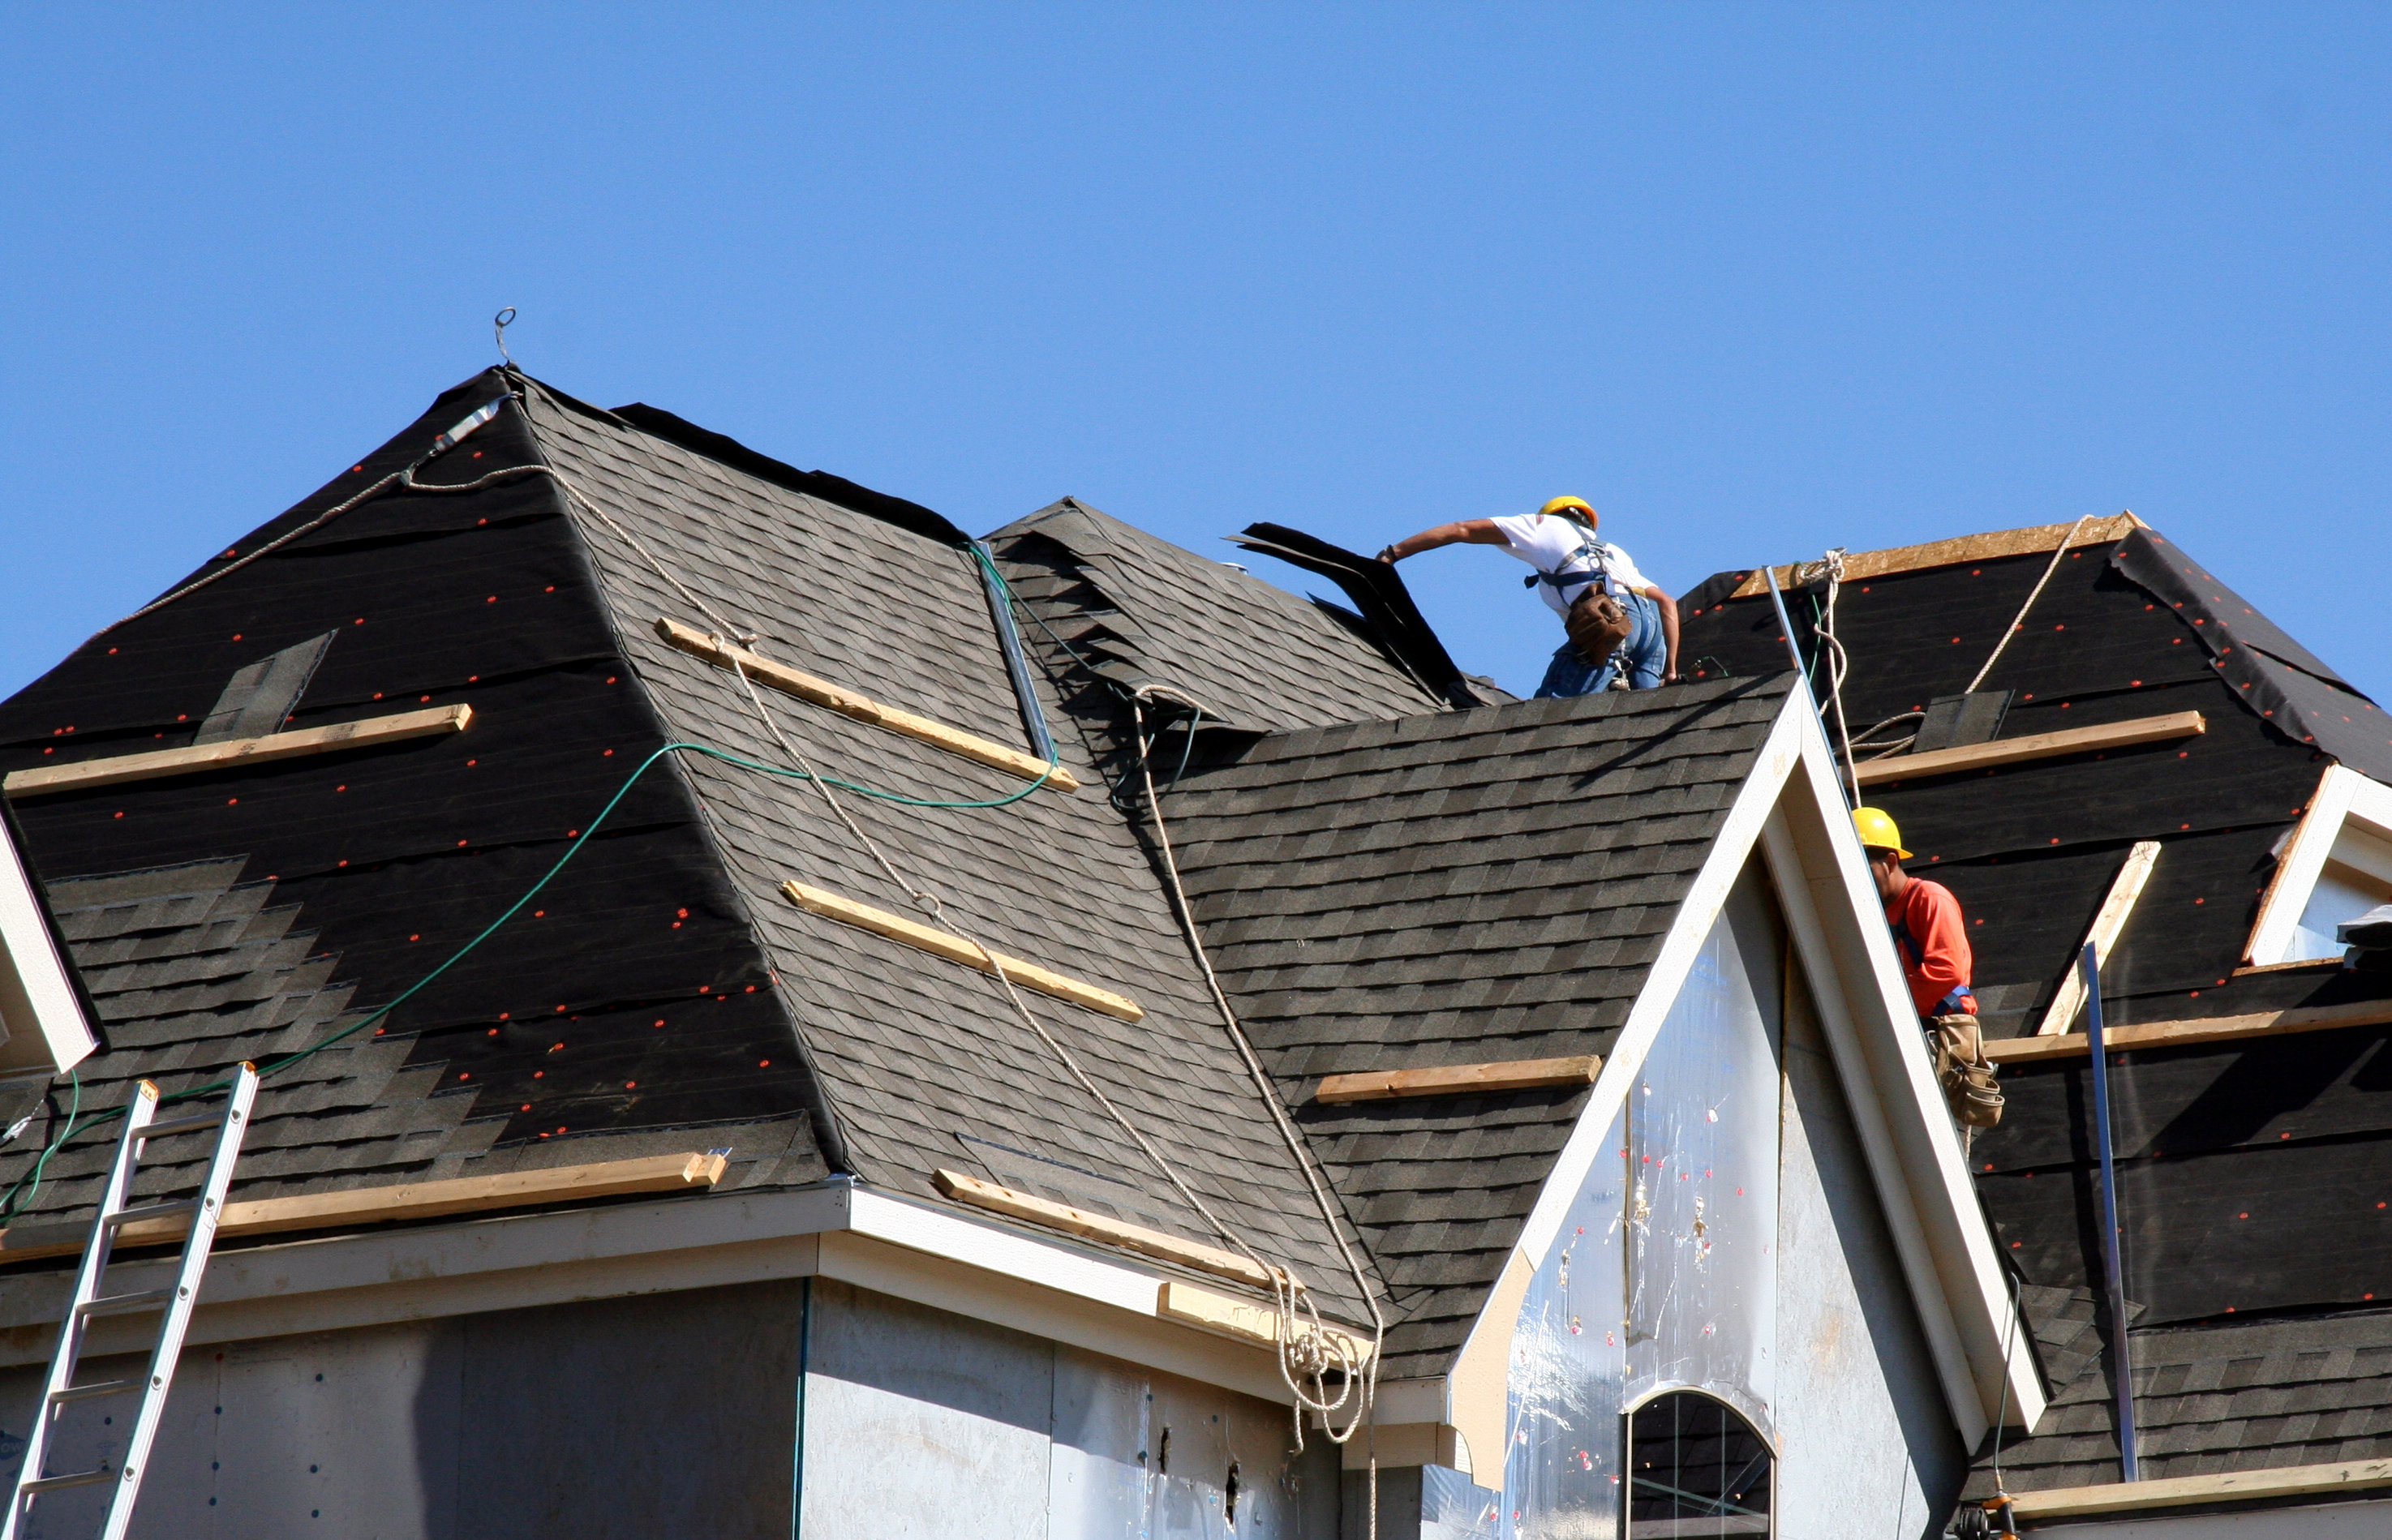 Repair Your Roof With Charleston Roofing Contractors at Titan Roofing LLC Call 843-647-3183